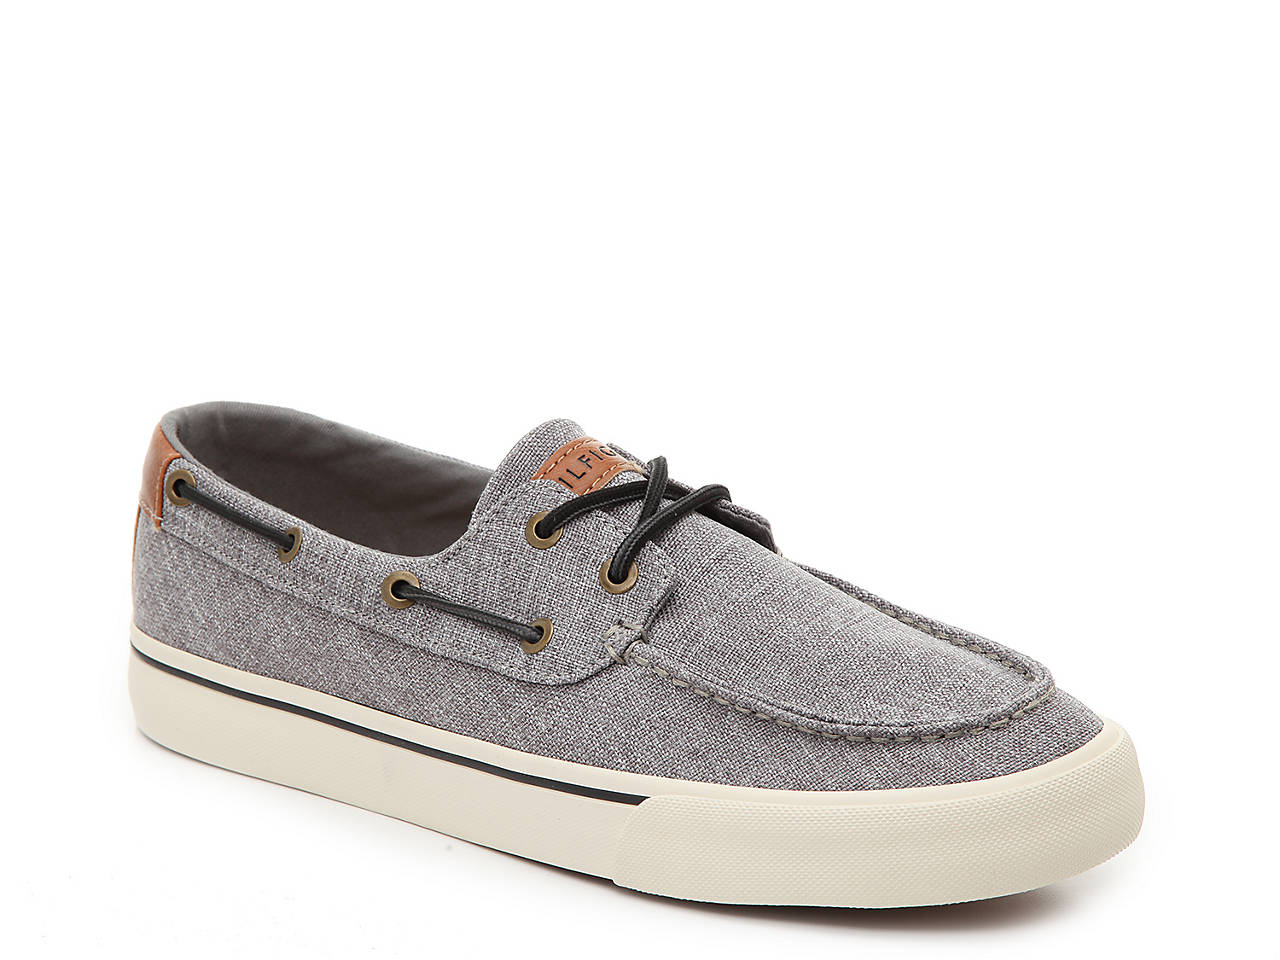 Tommy hilfiger pharis boat shoe mens shoes dsw pharis boat shoe publicscrutiny Choice Image